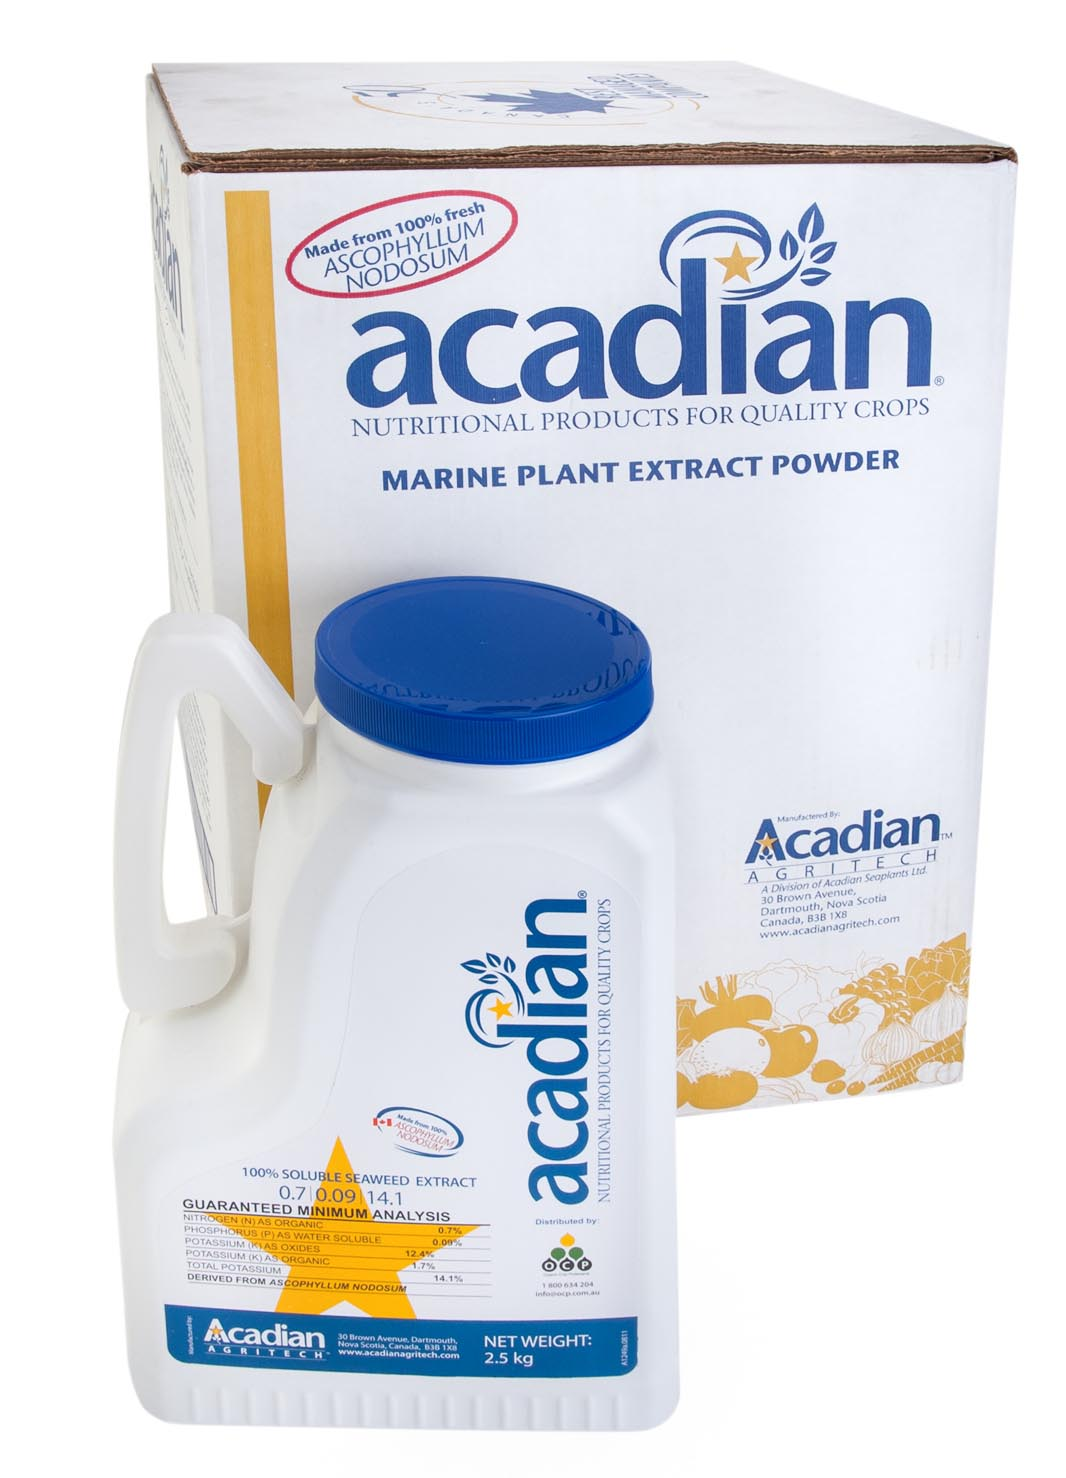 Acadian 100% soluble extract powder